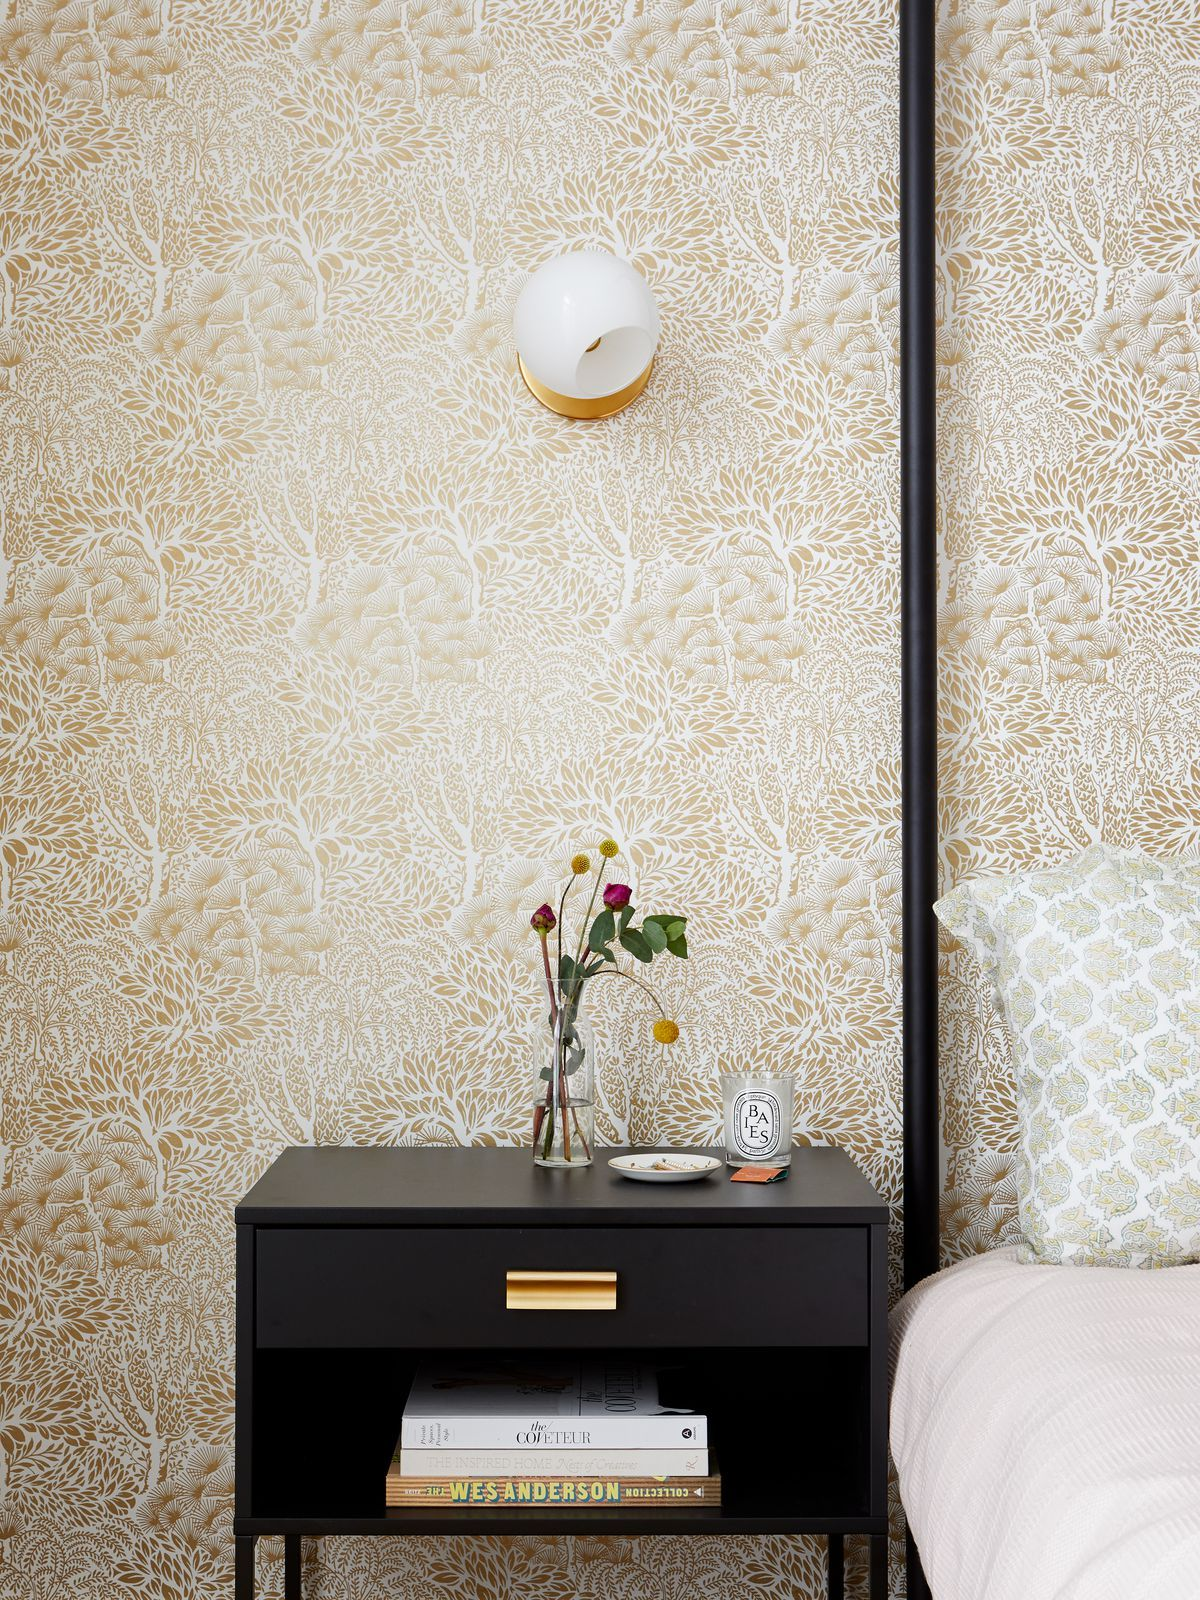 How To Remove Wallpaper Yourself Removable Wallpaper Plates On Wall Wallpaper Removal Solution